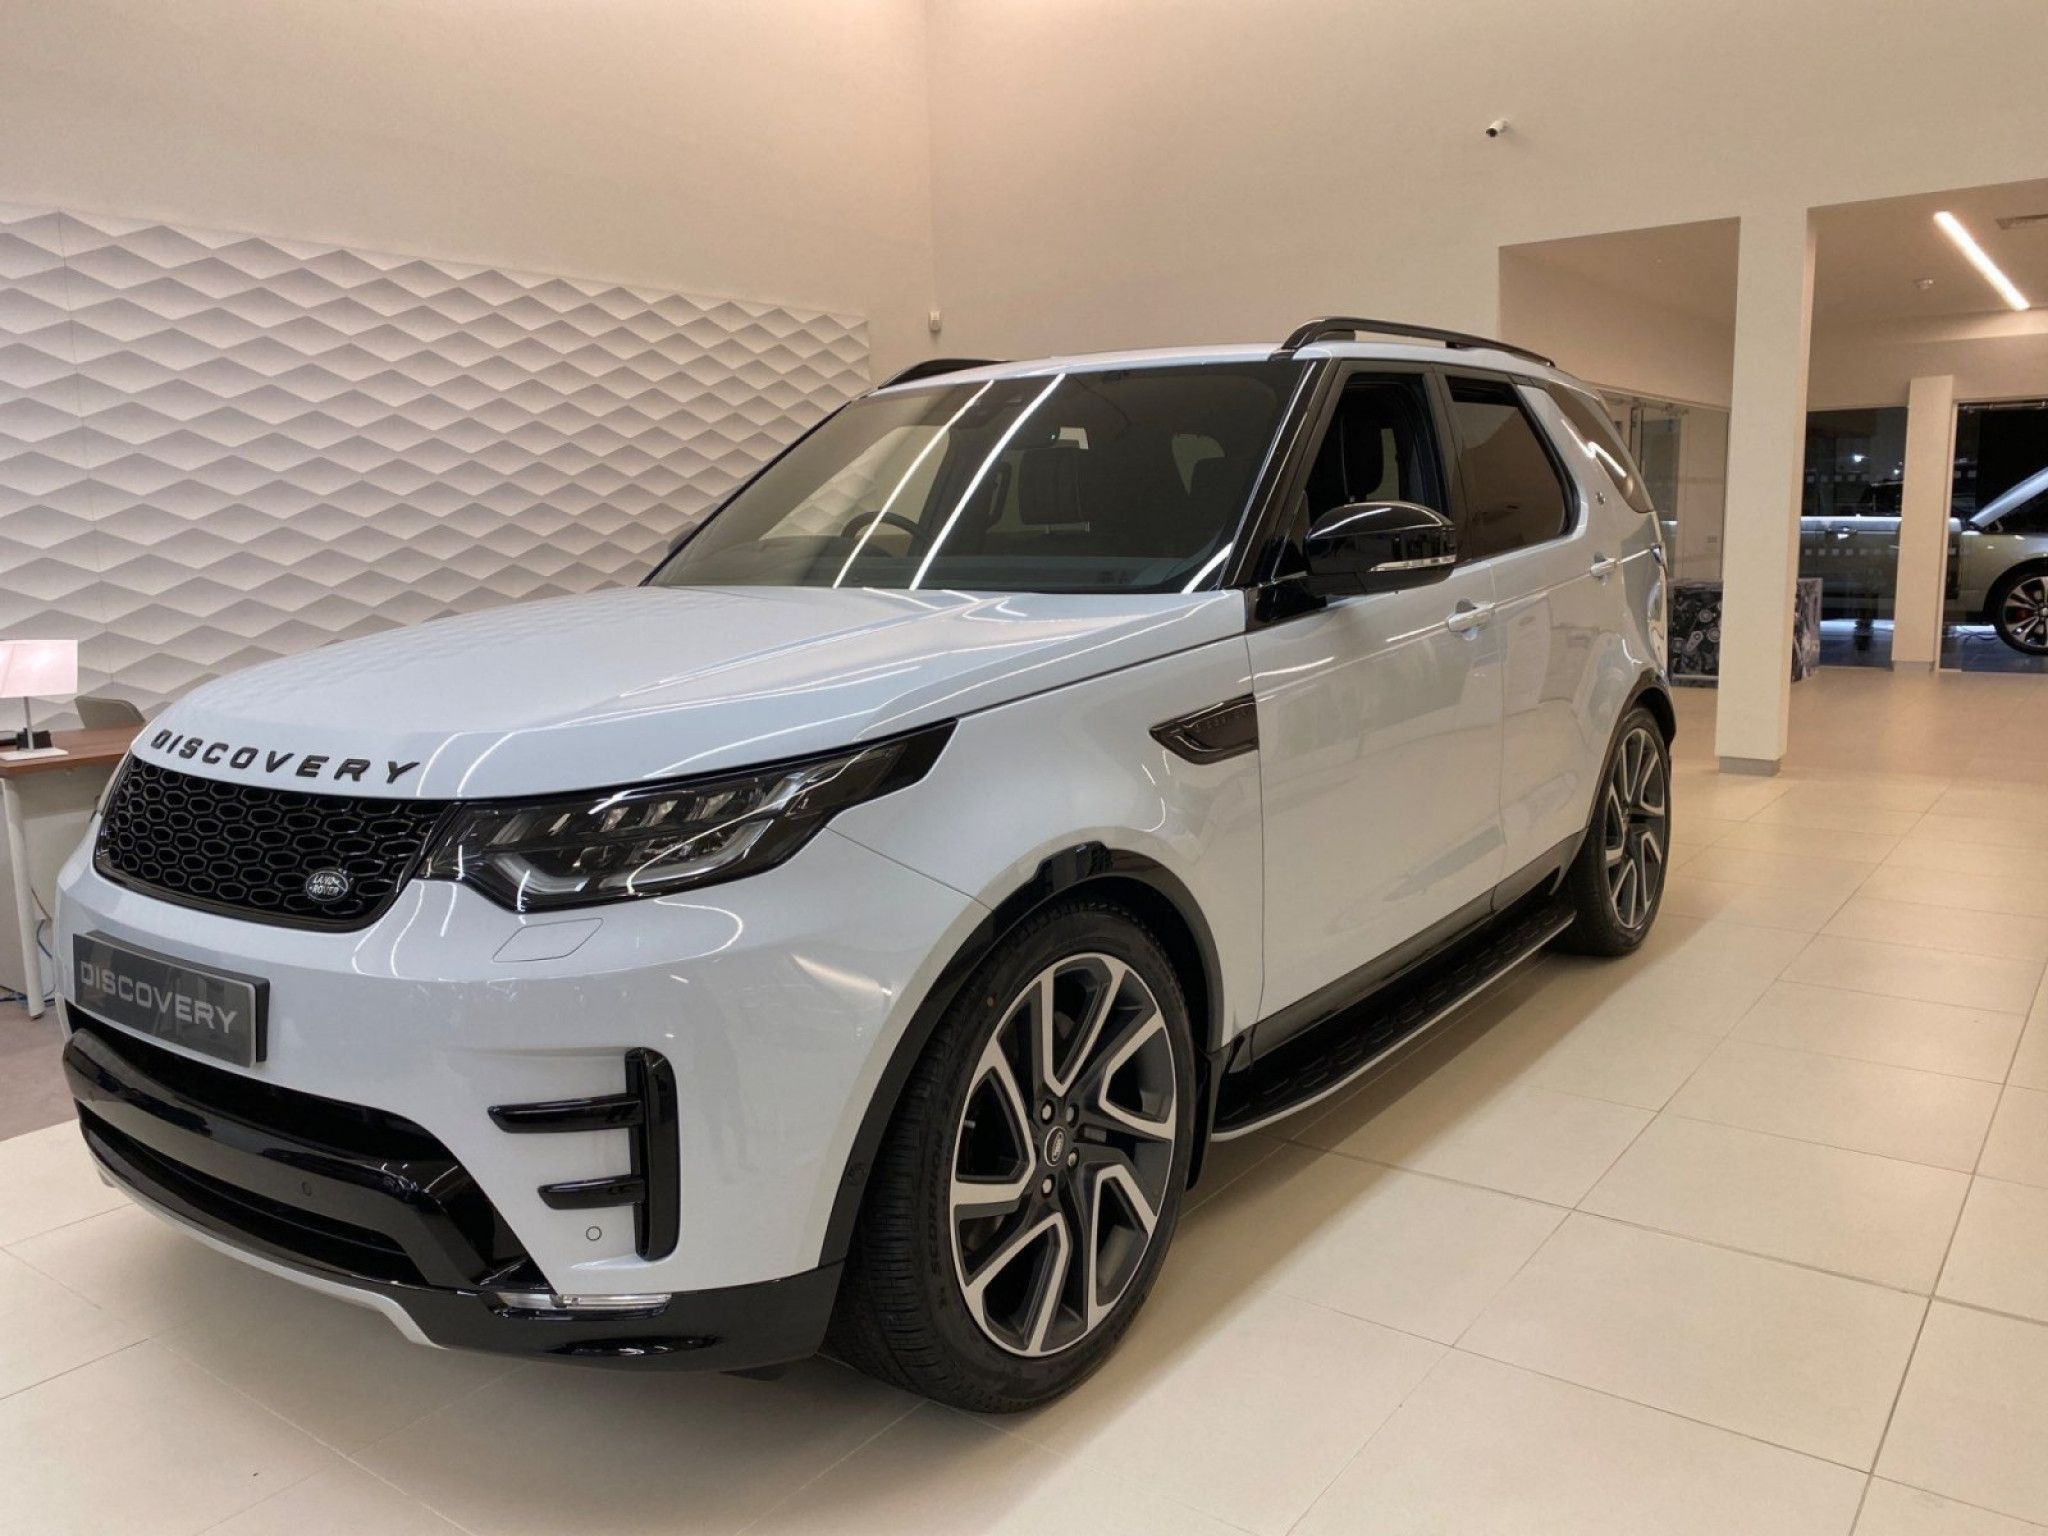 Land Rover Discovery 3 0 Sdv6 Hse Luxury 5dr Auto For Sale Land Rover Discovery Land Rover Used Land Rover